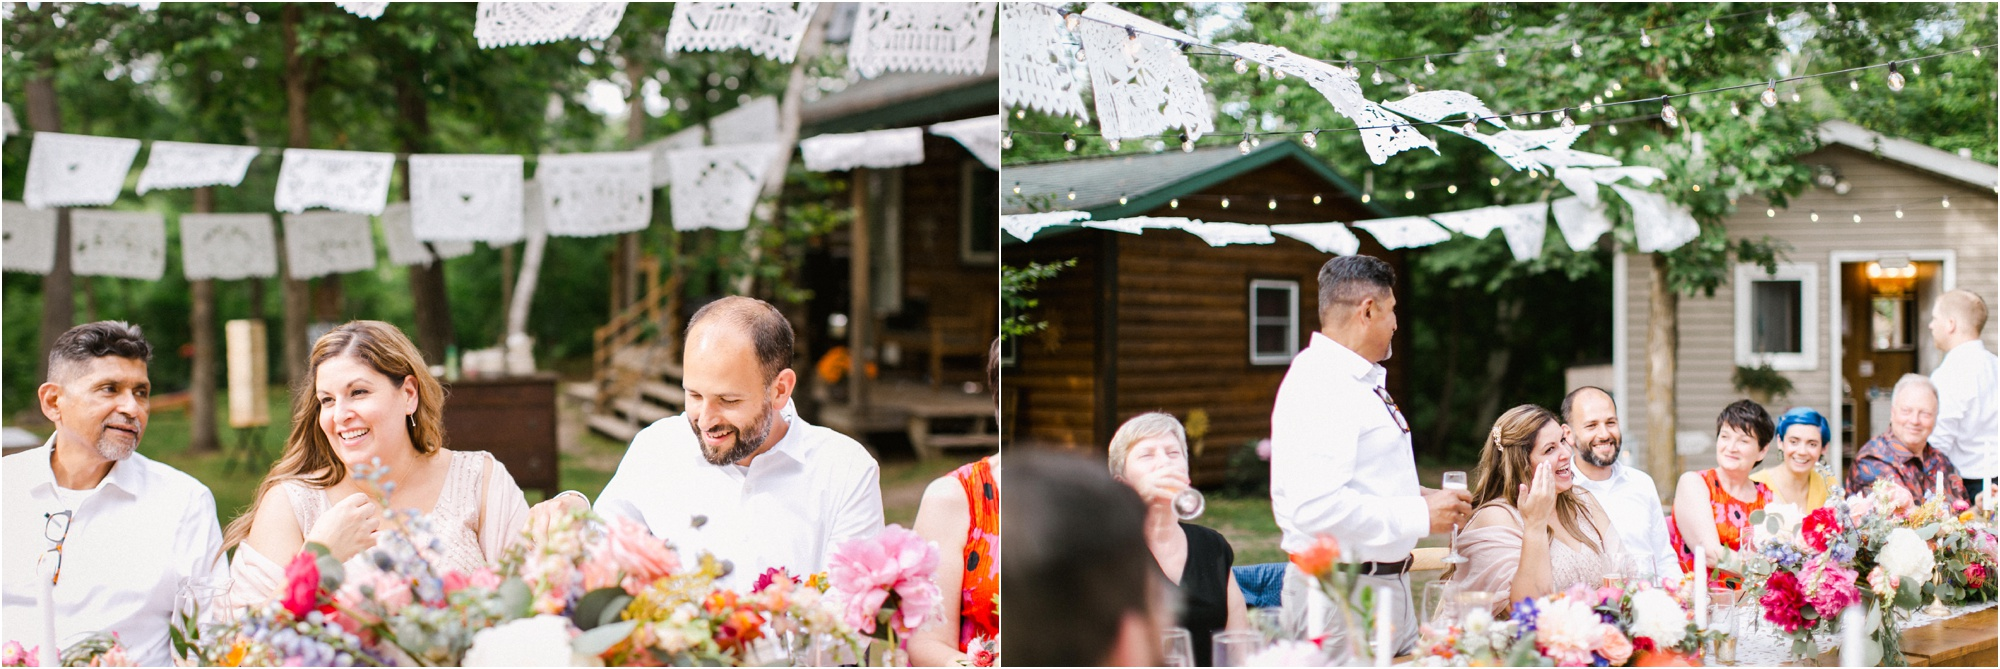 Wedding Photography Brainerd MN Aimee Jobe Photography Private Lake Residence Bloom Designs_0074.jpg